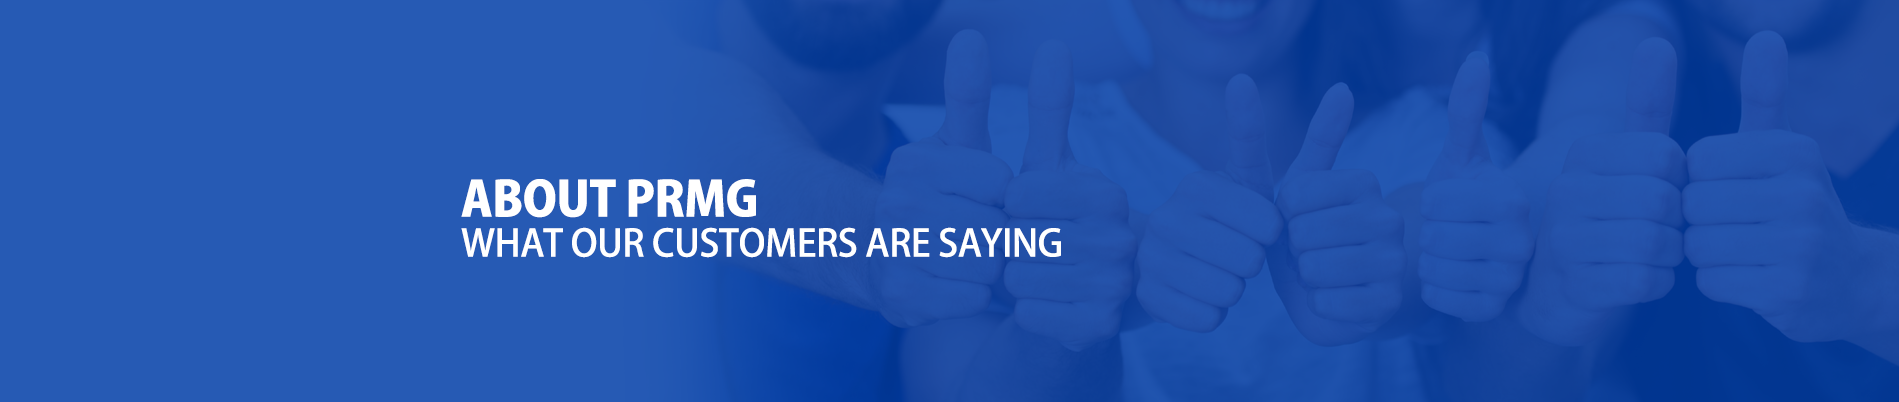 About PRMG, what customers are saying Banner